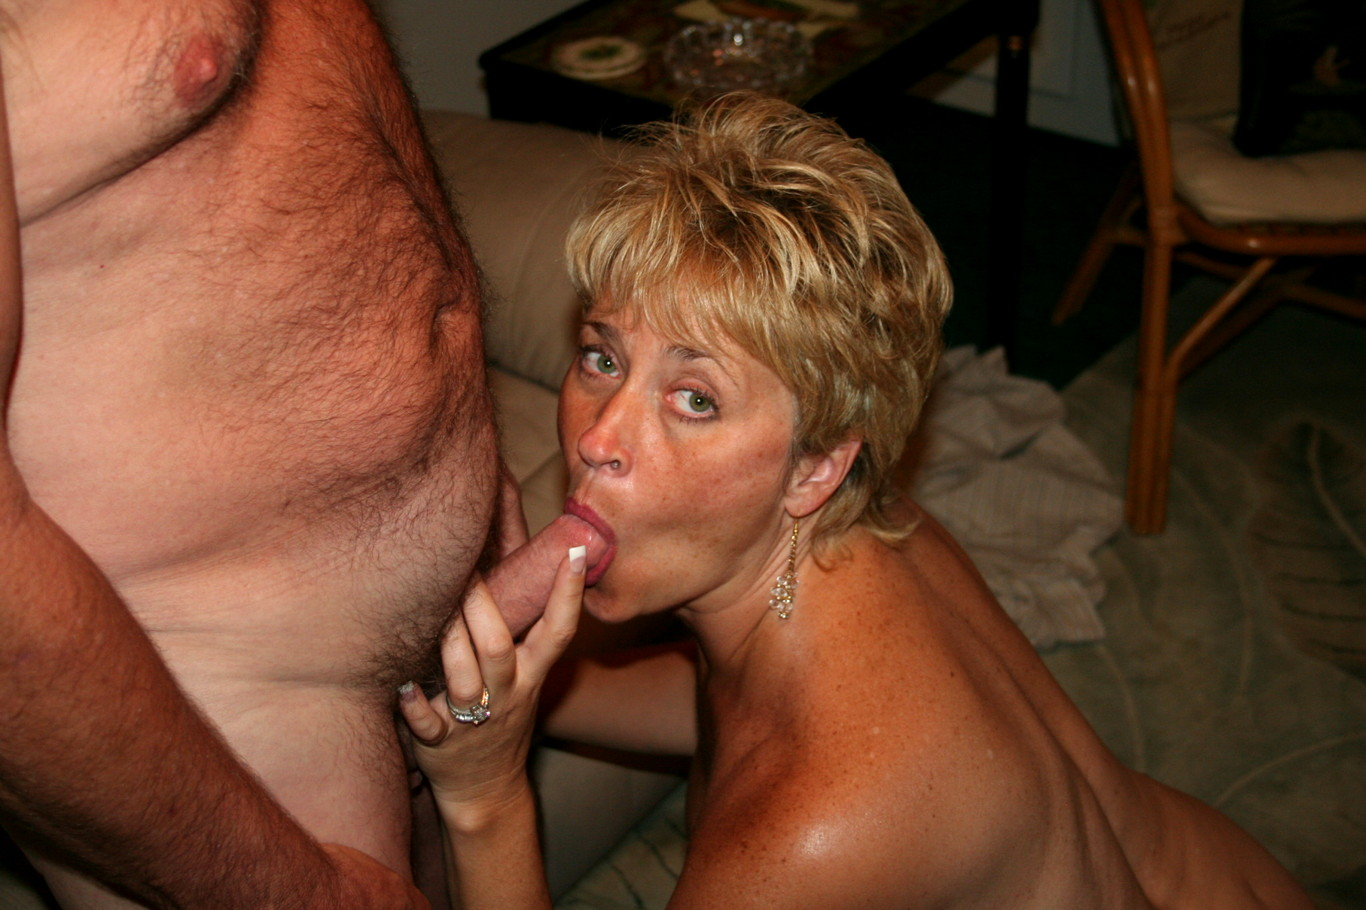 Naked milf blog